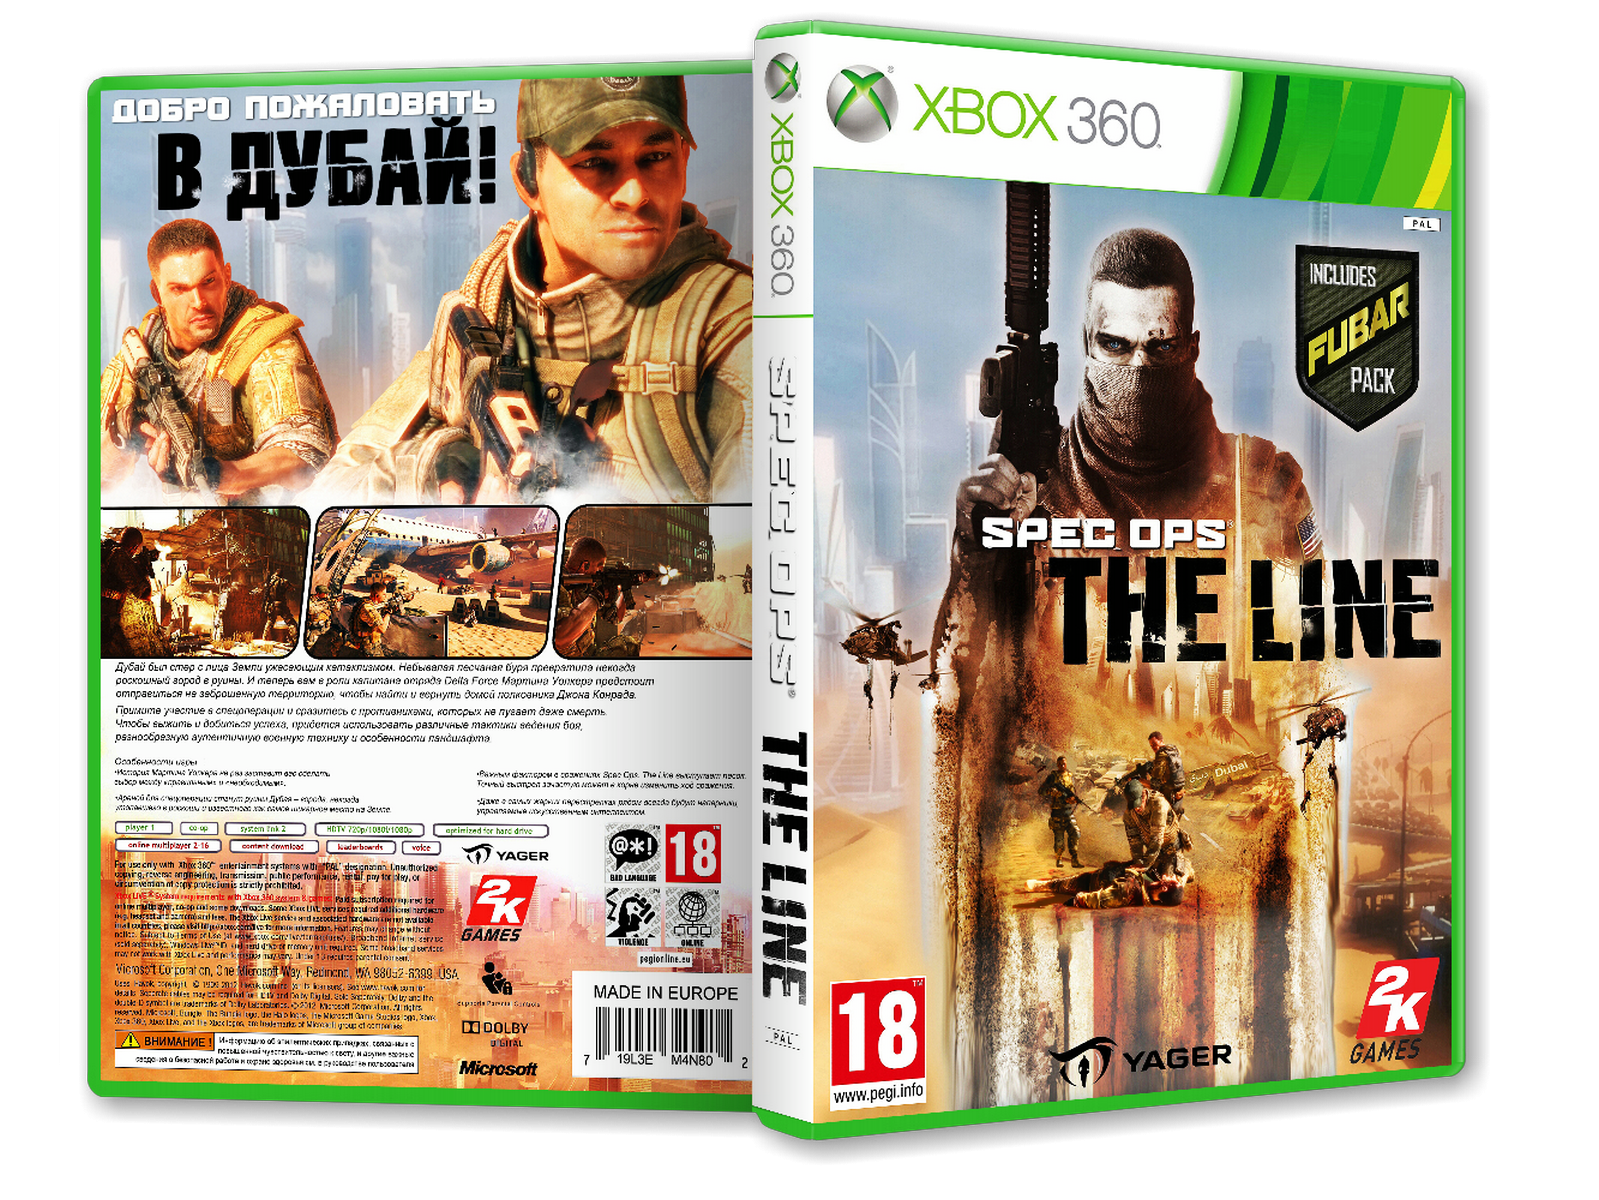 Spec Ops: The Line box cover